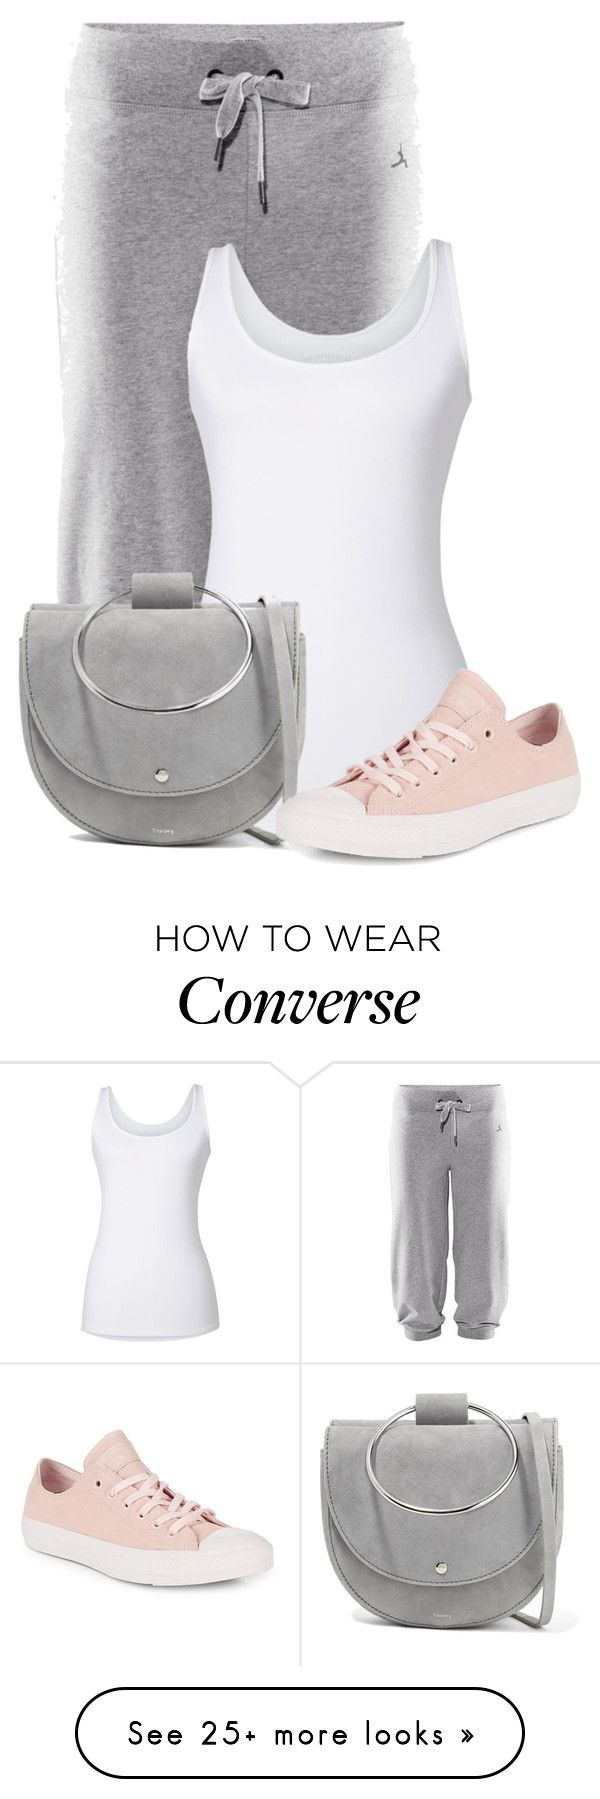 """Untitled #24364"" by nanette-253 on Polyvore featuring H&M, Theory and Converse"